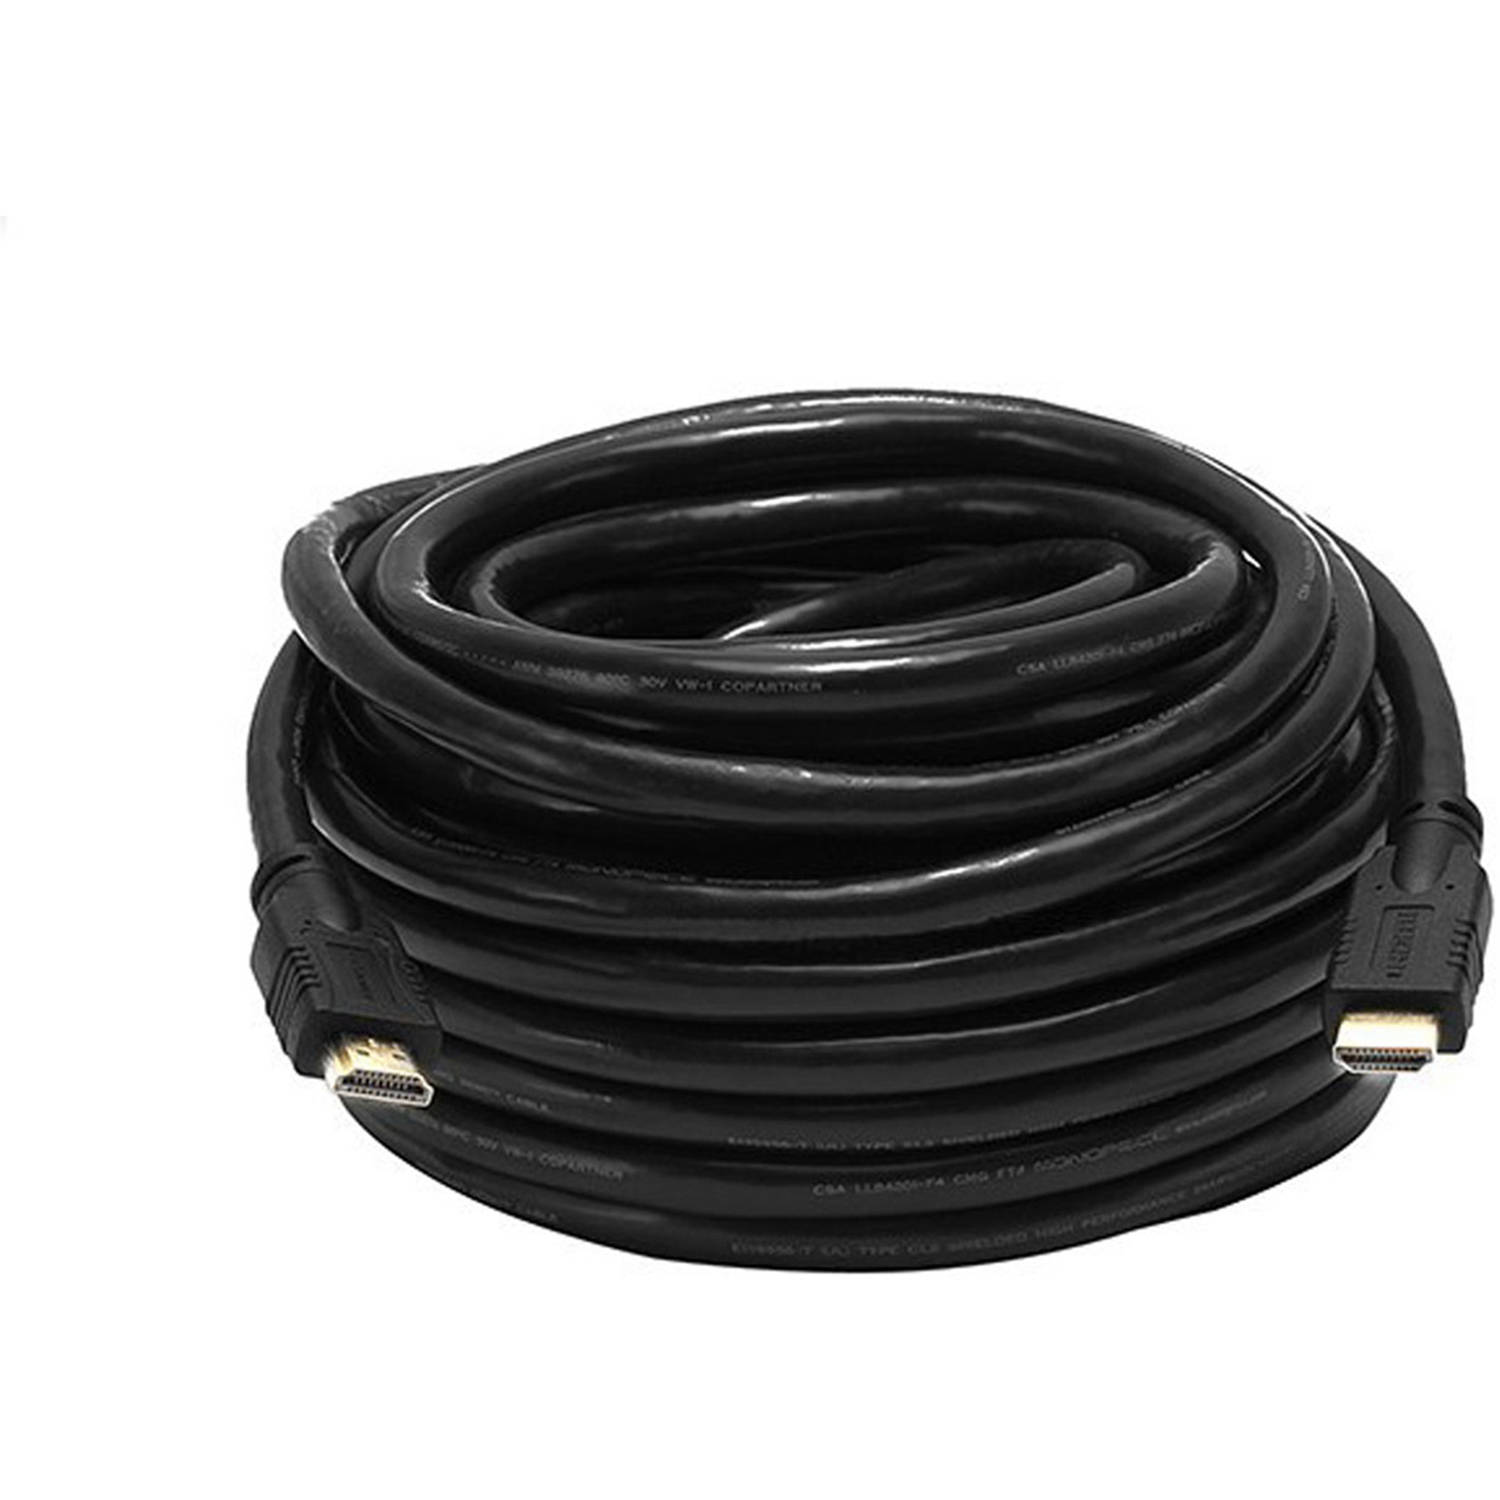 Electronic Master 50' HDMI Male to Male Cable, EMHD8250